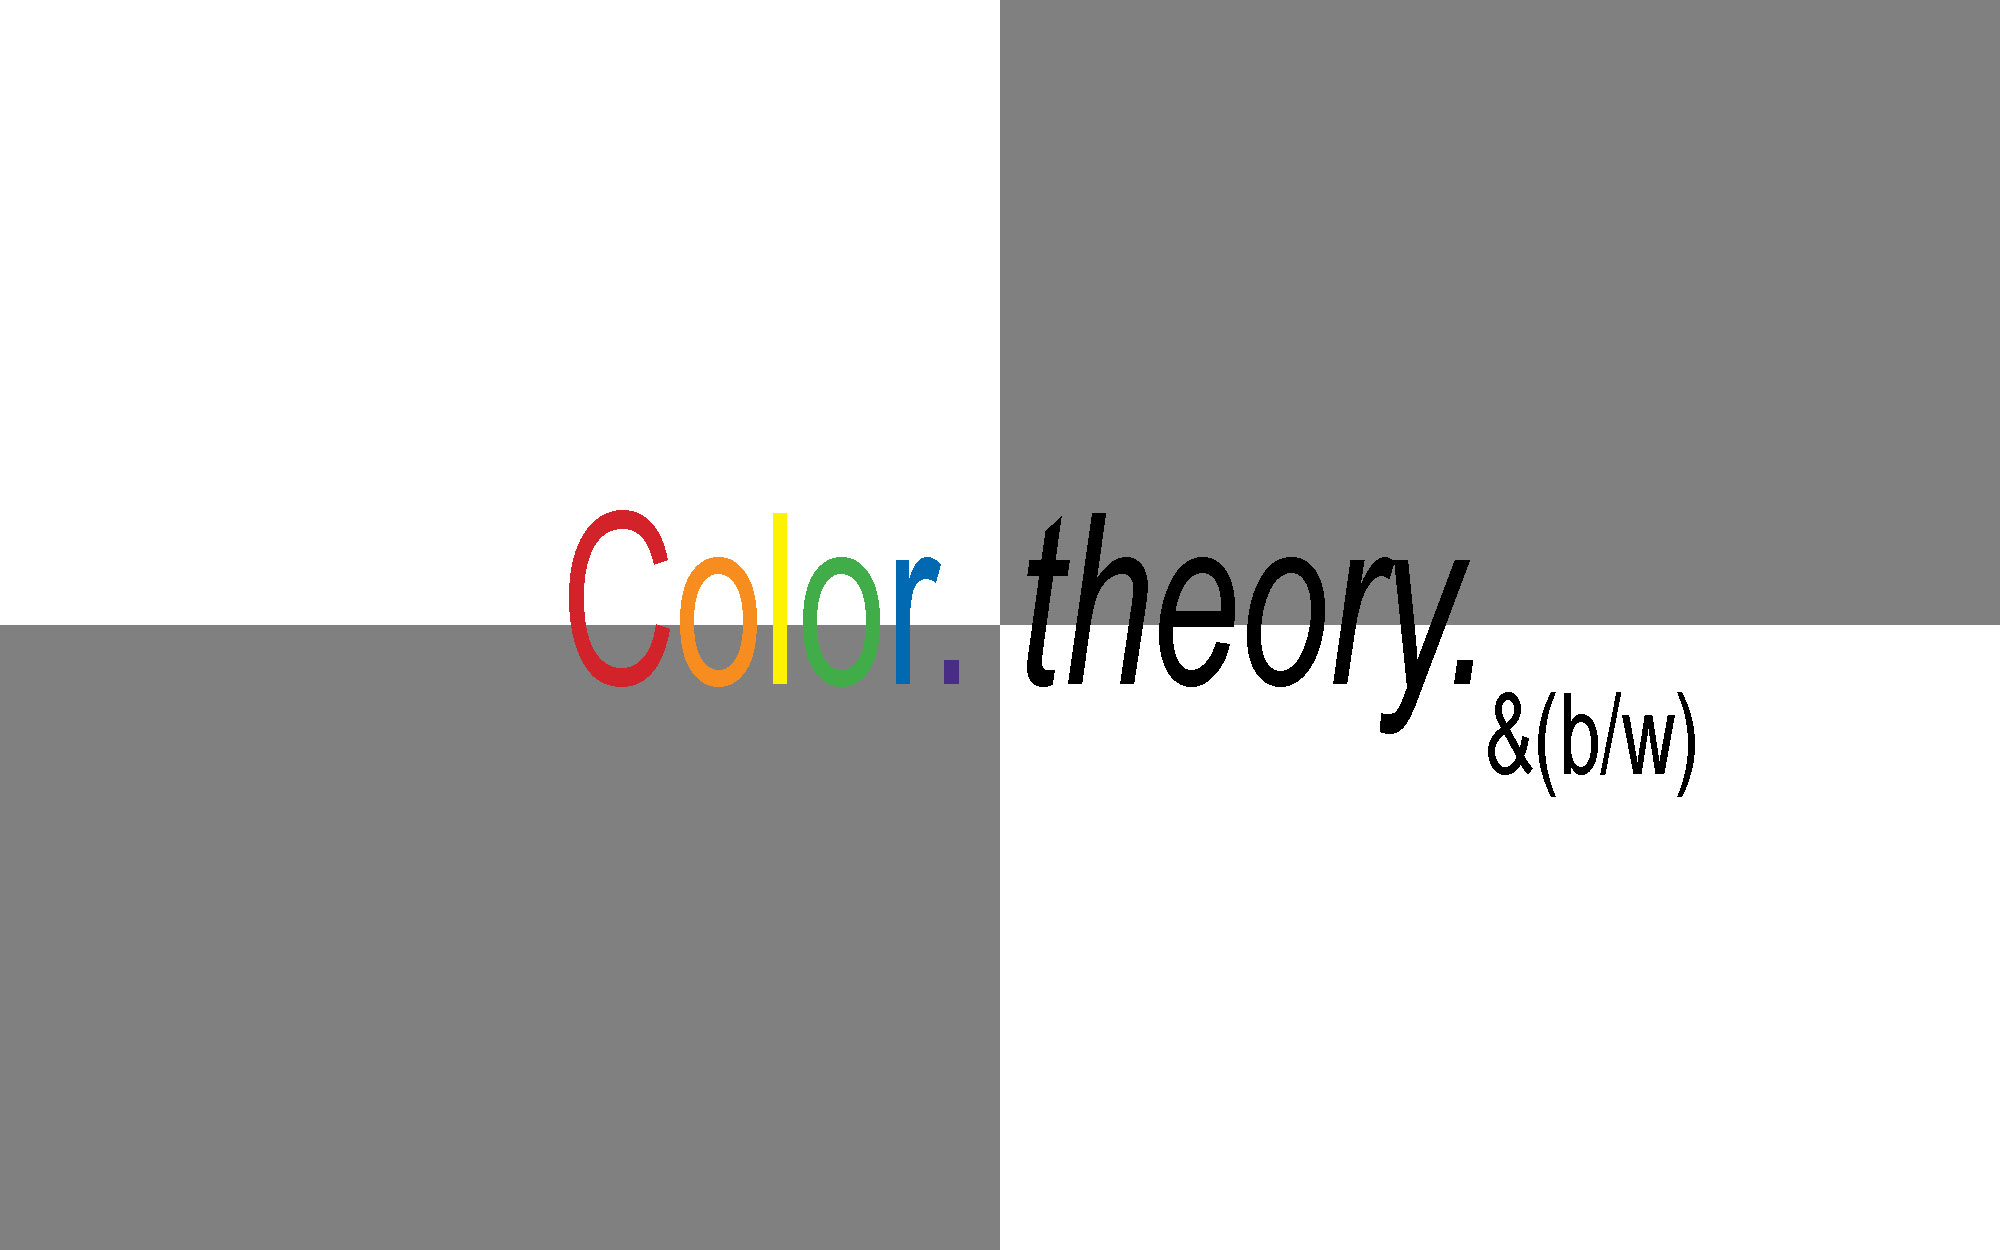 Color. Theory. &(b/w) show